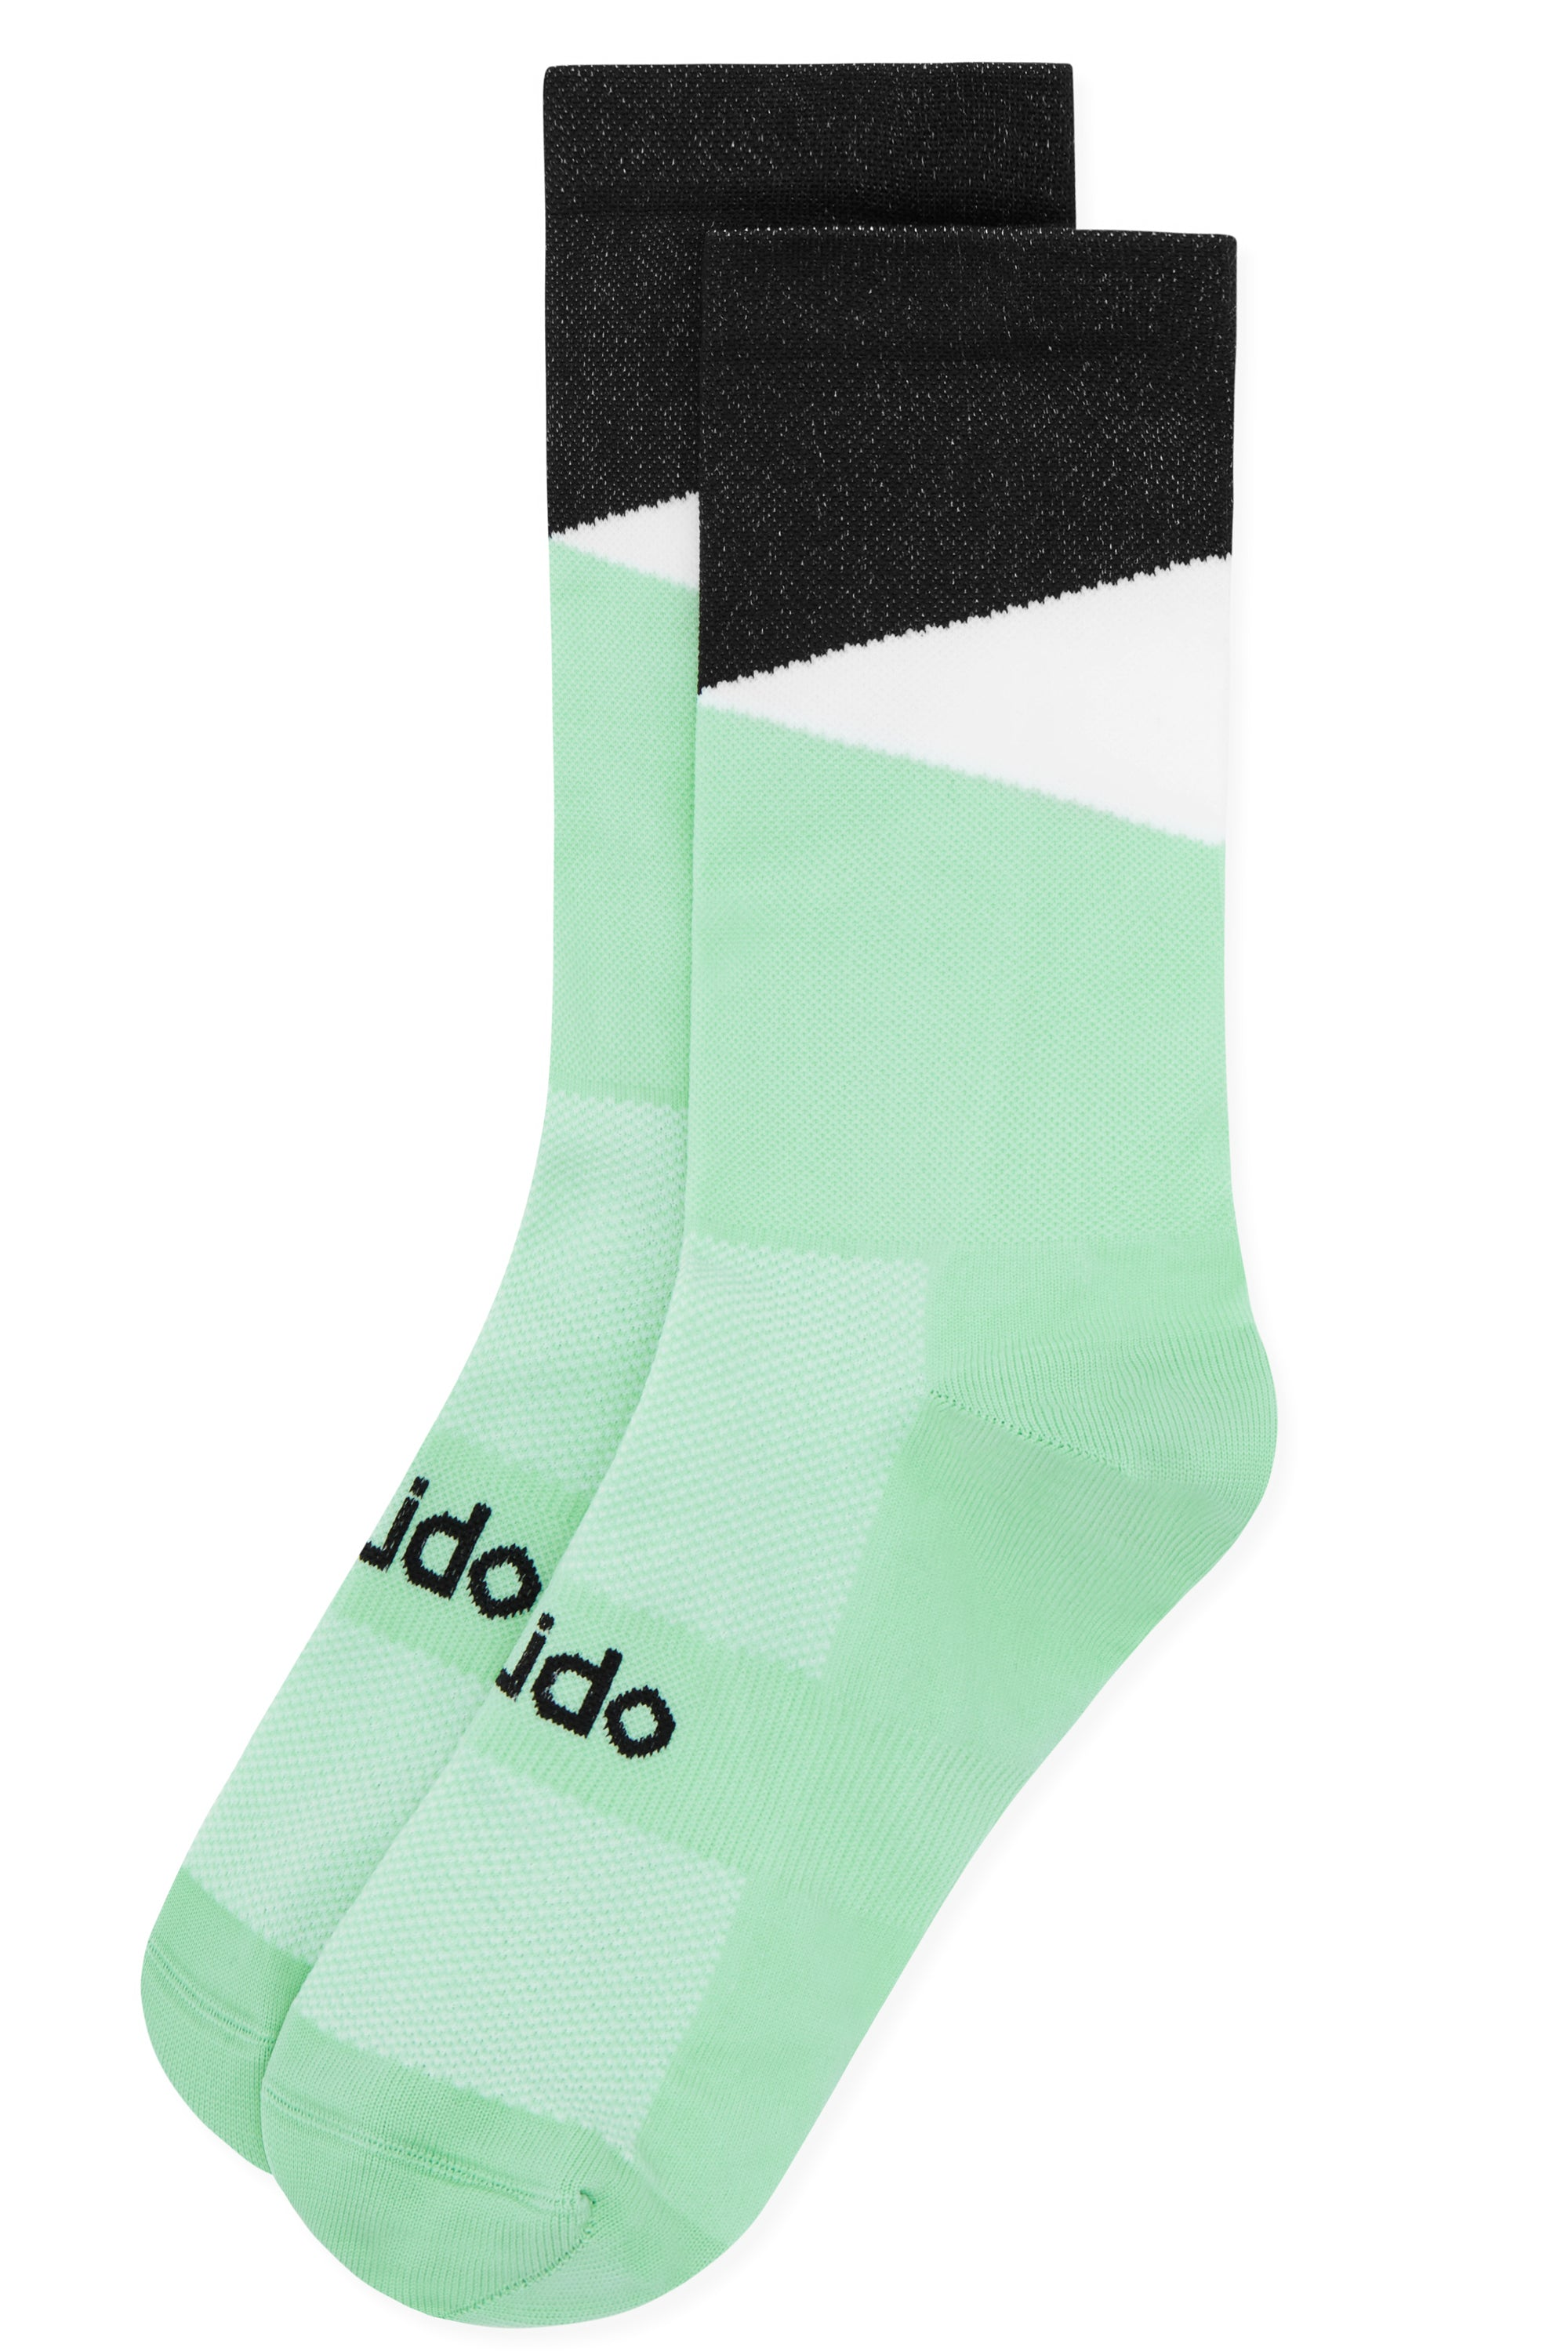 Best cycling socks 2020